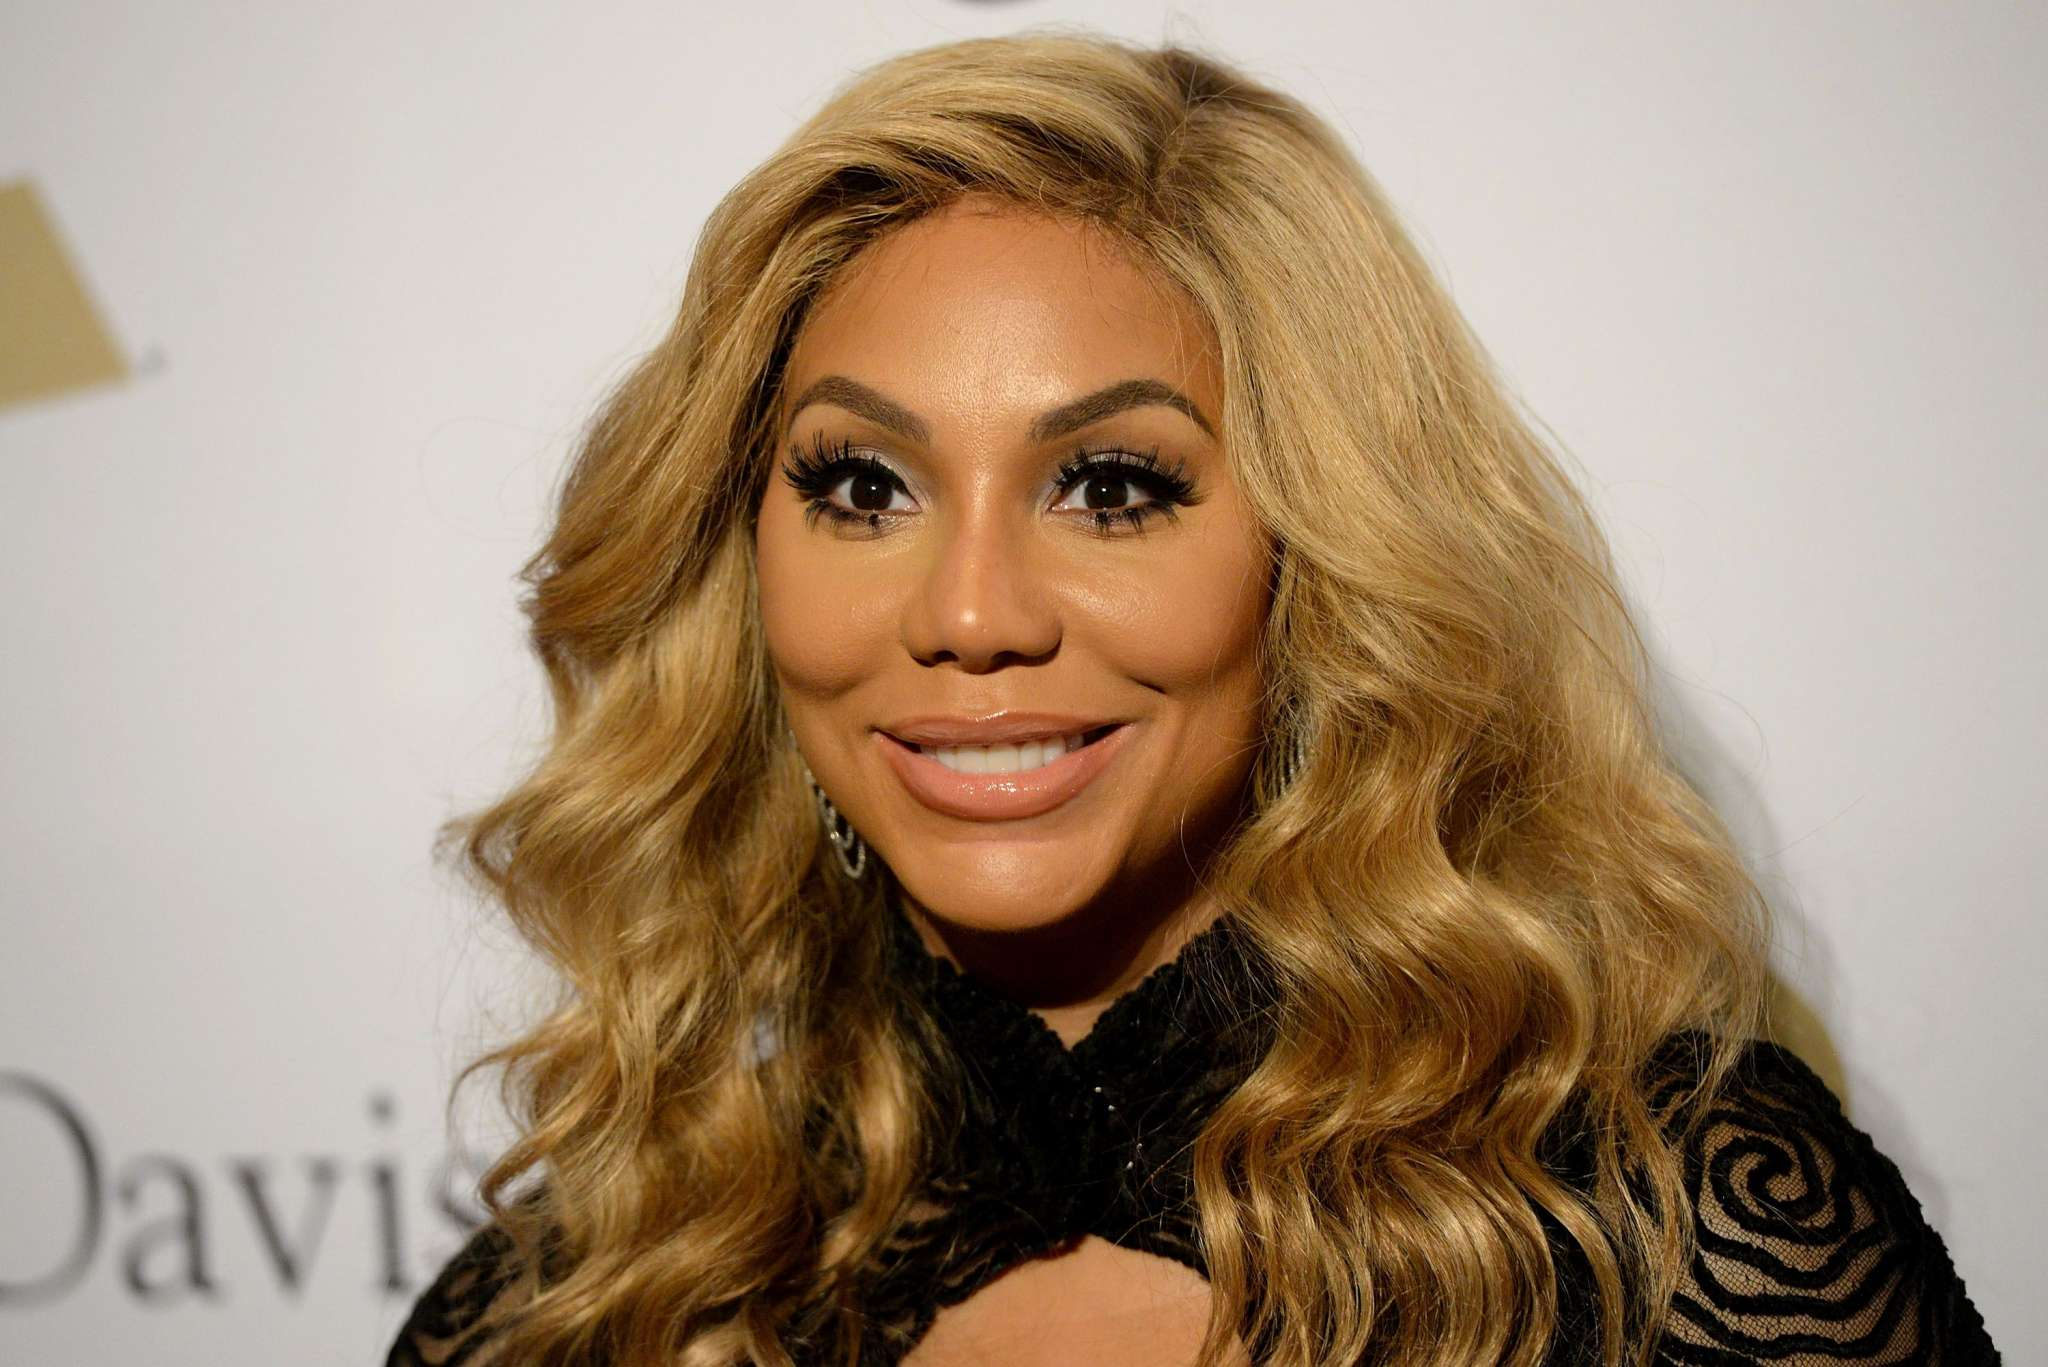 Tamar Braxton Has An Inspirational Message For Fans